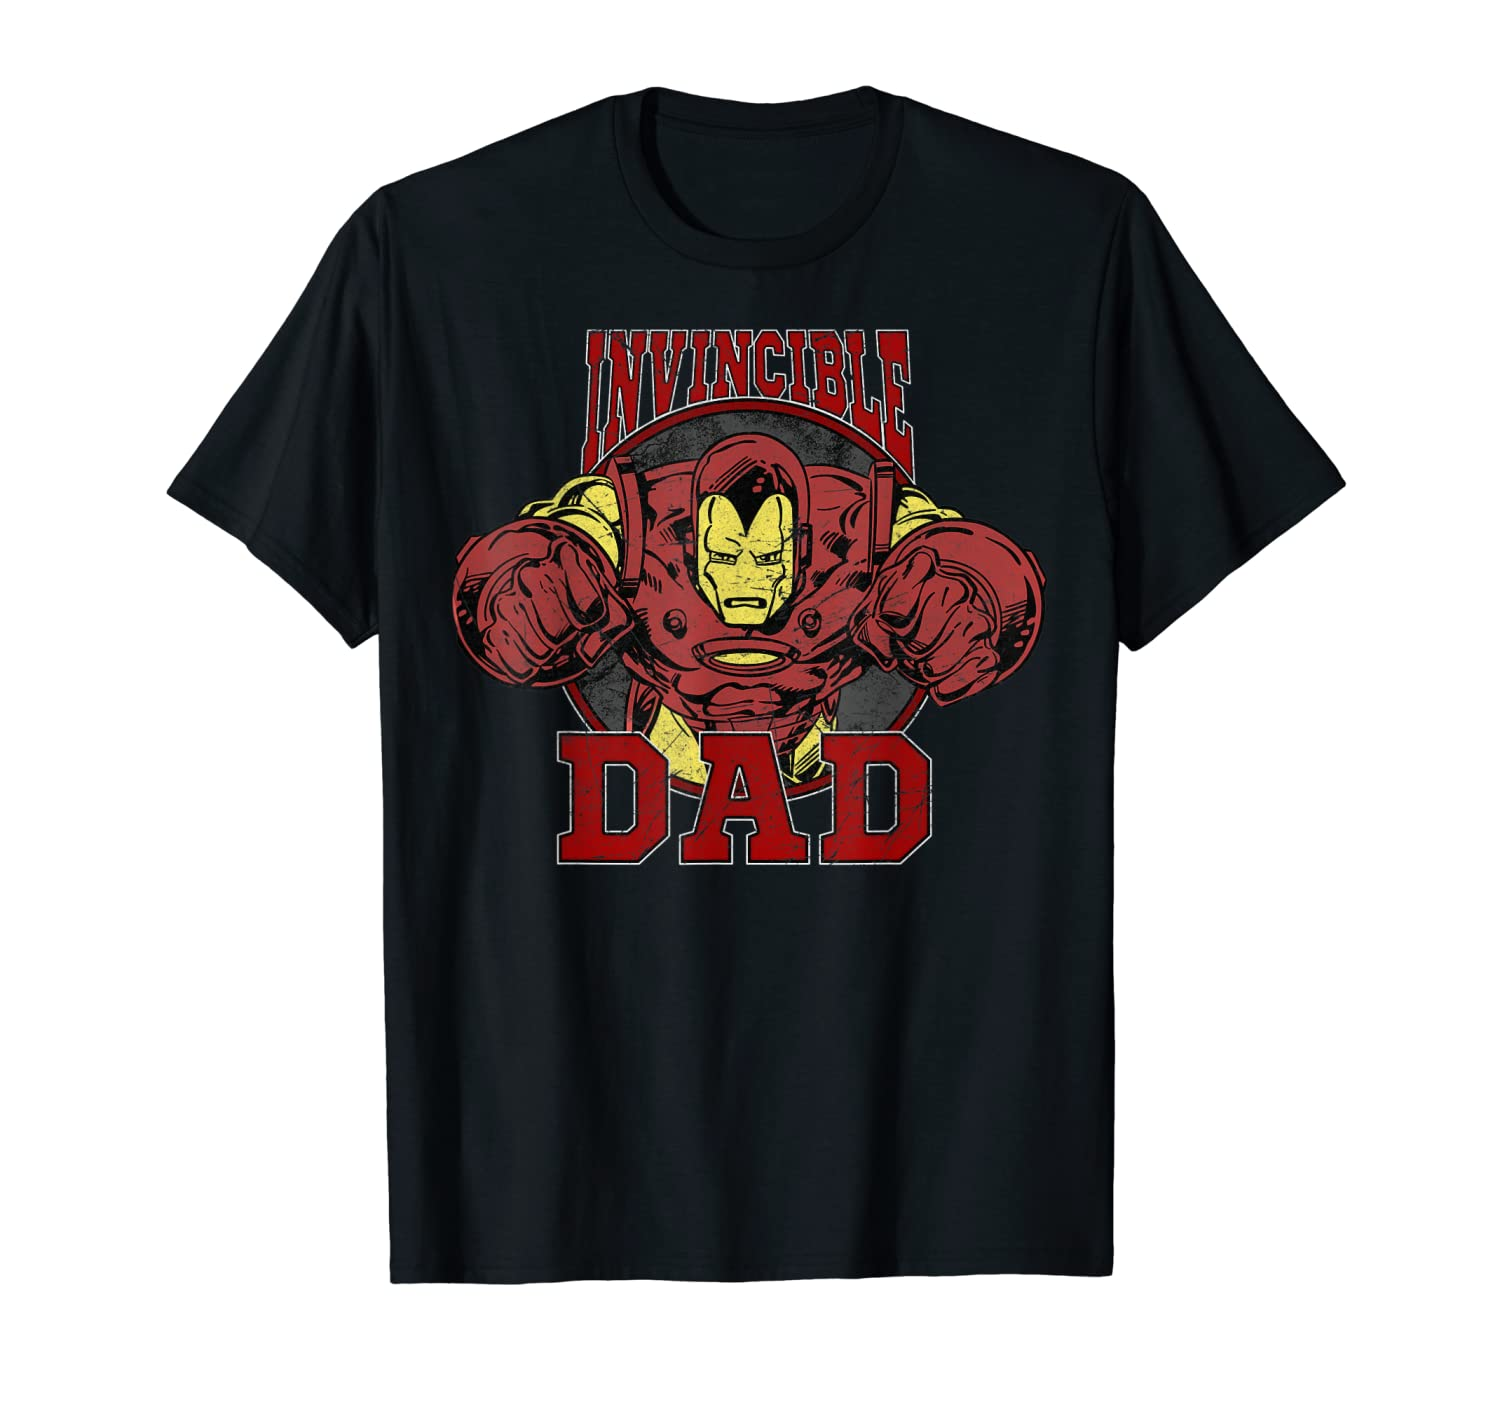 037d3882 Amazon.com: Marvel Iron Man Father's Day Invincible Dad Graphic T-Shirt:  Clothing